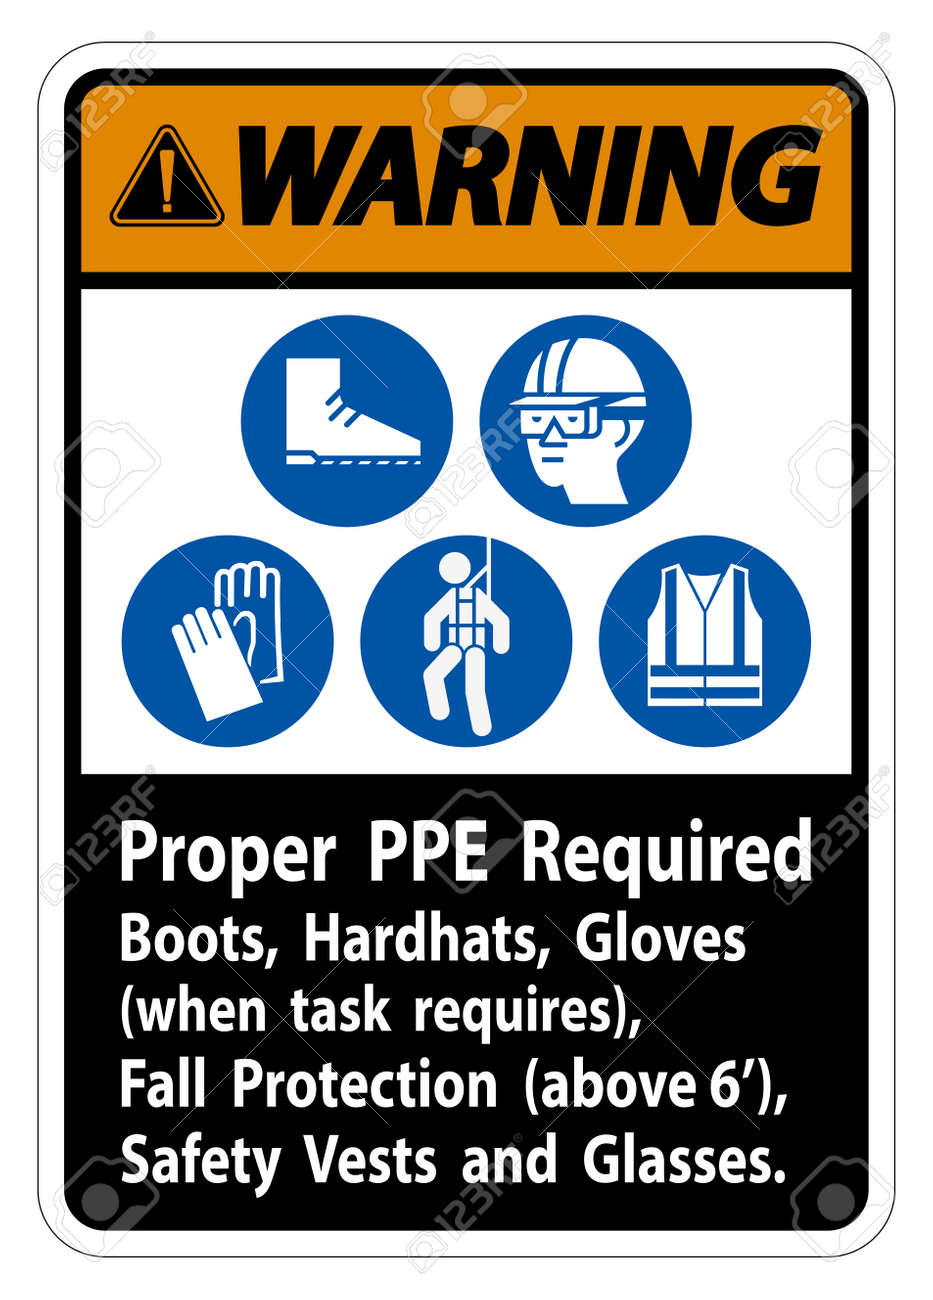 Warning Sign Proper PPE Required Boots, Hardhats, Gloves When Task Requires Fall Protection With PPE Symbols - 155690621